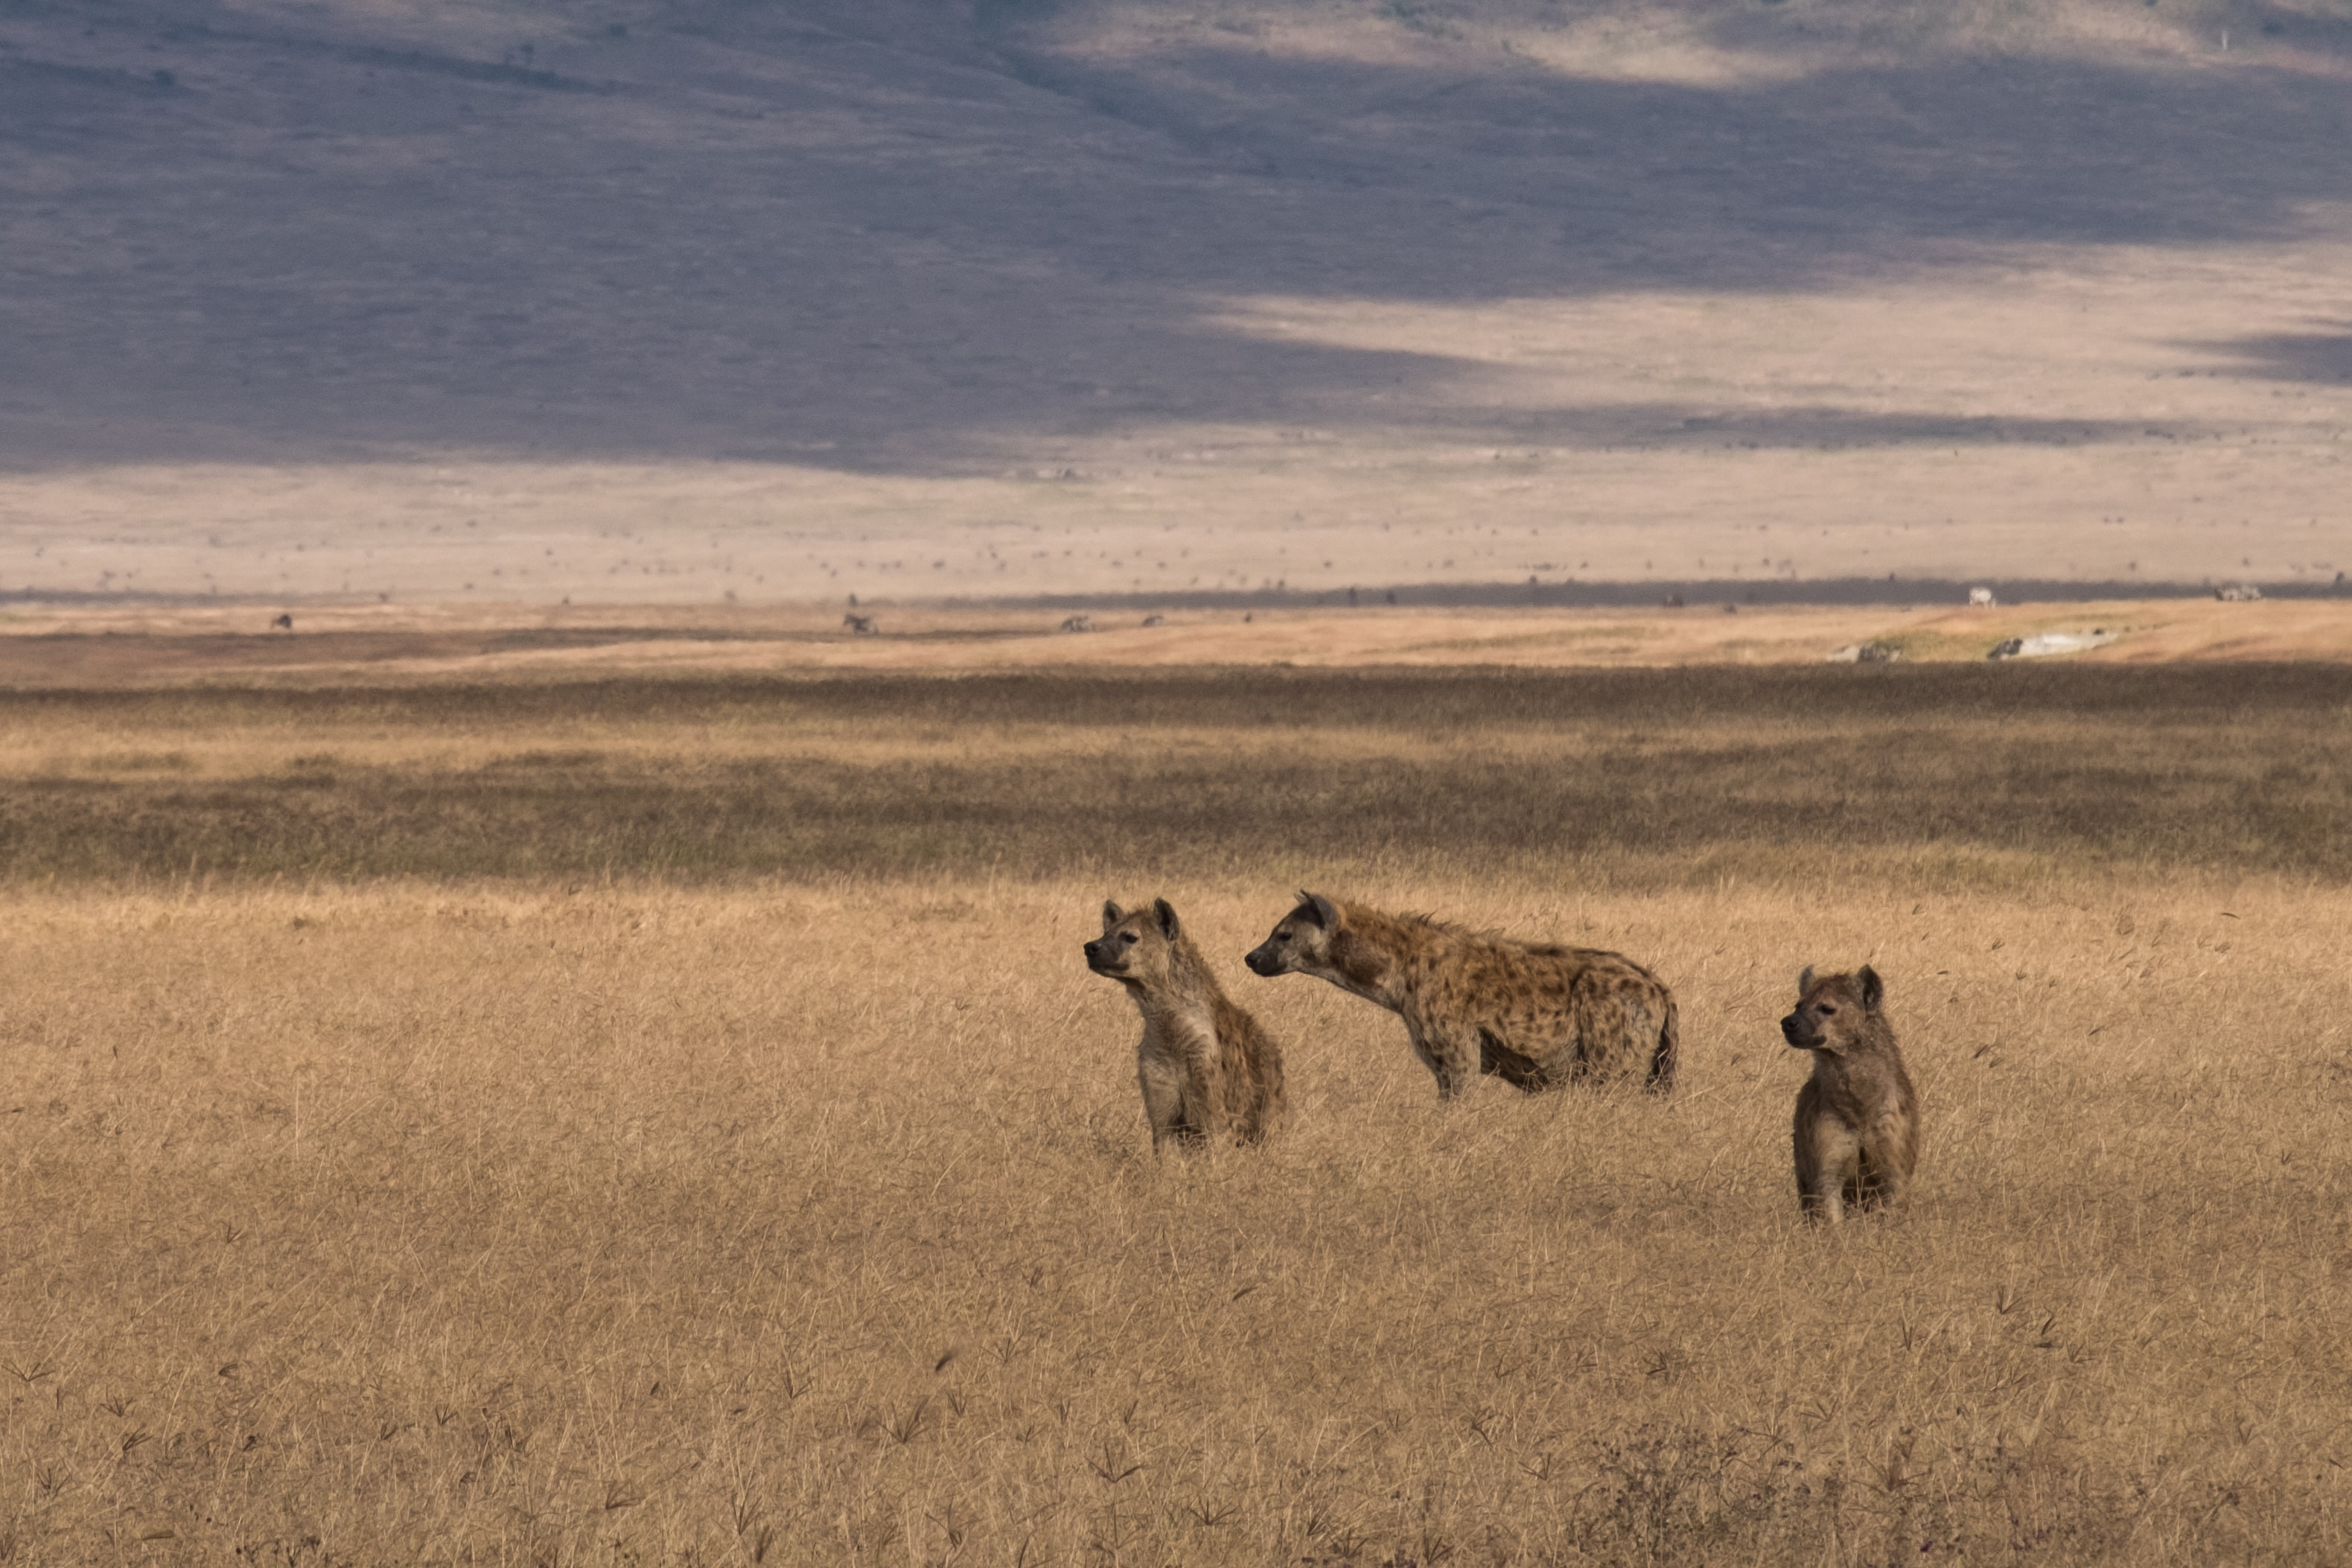 Hyenas watch their prey in a field in Tanzania